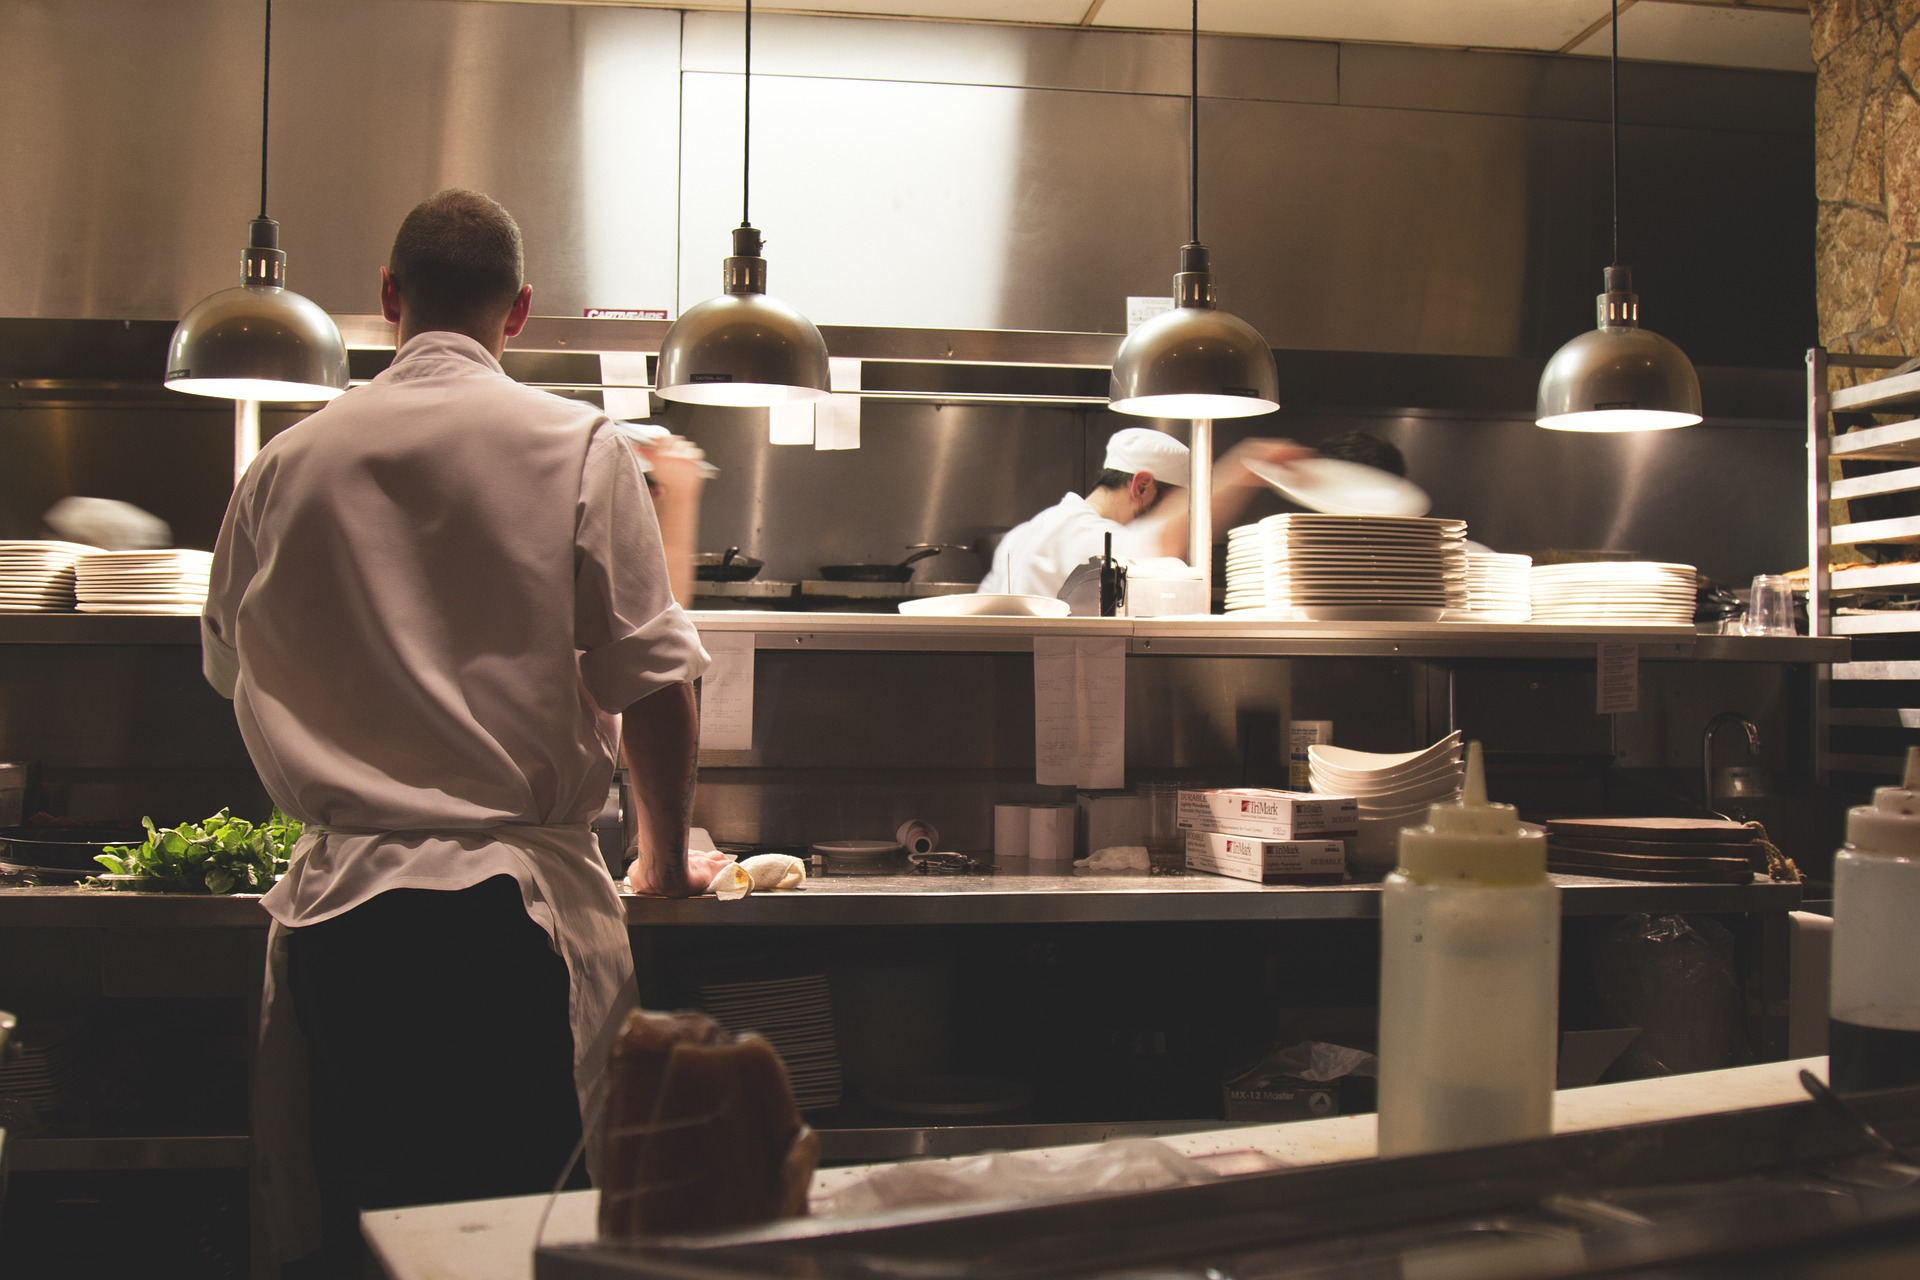 Dark Kitchens and Virtual Restaurants: The Future of the Food Industry?